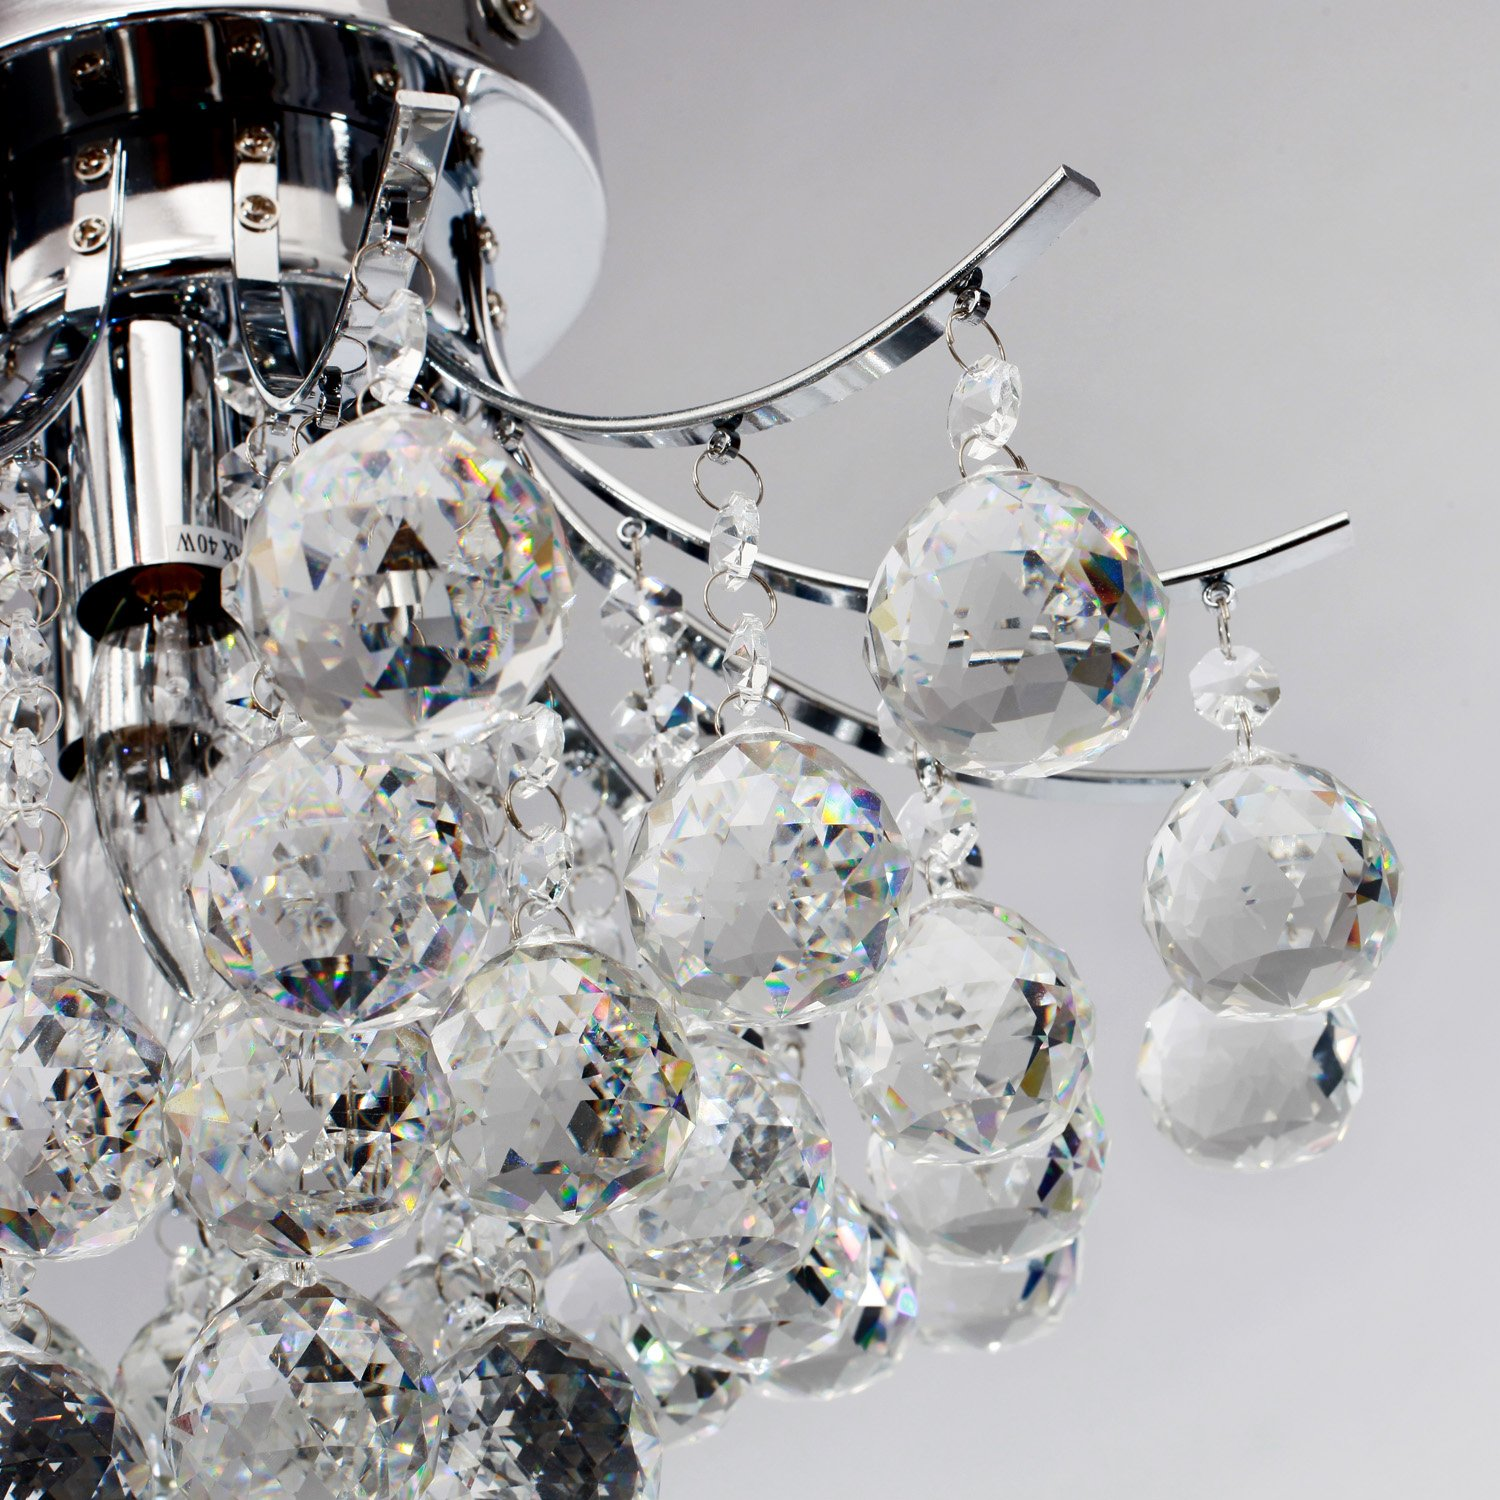 mount light ofelia lights view orb galaxy flush lighting larger ceiling